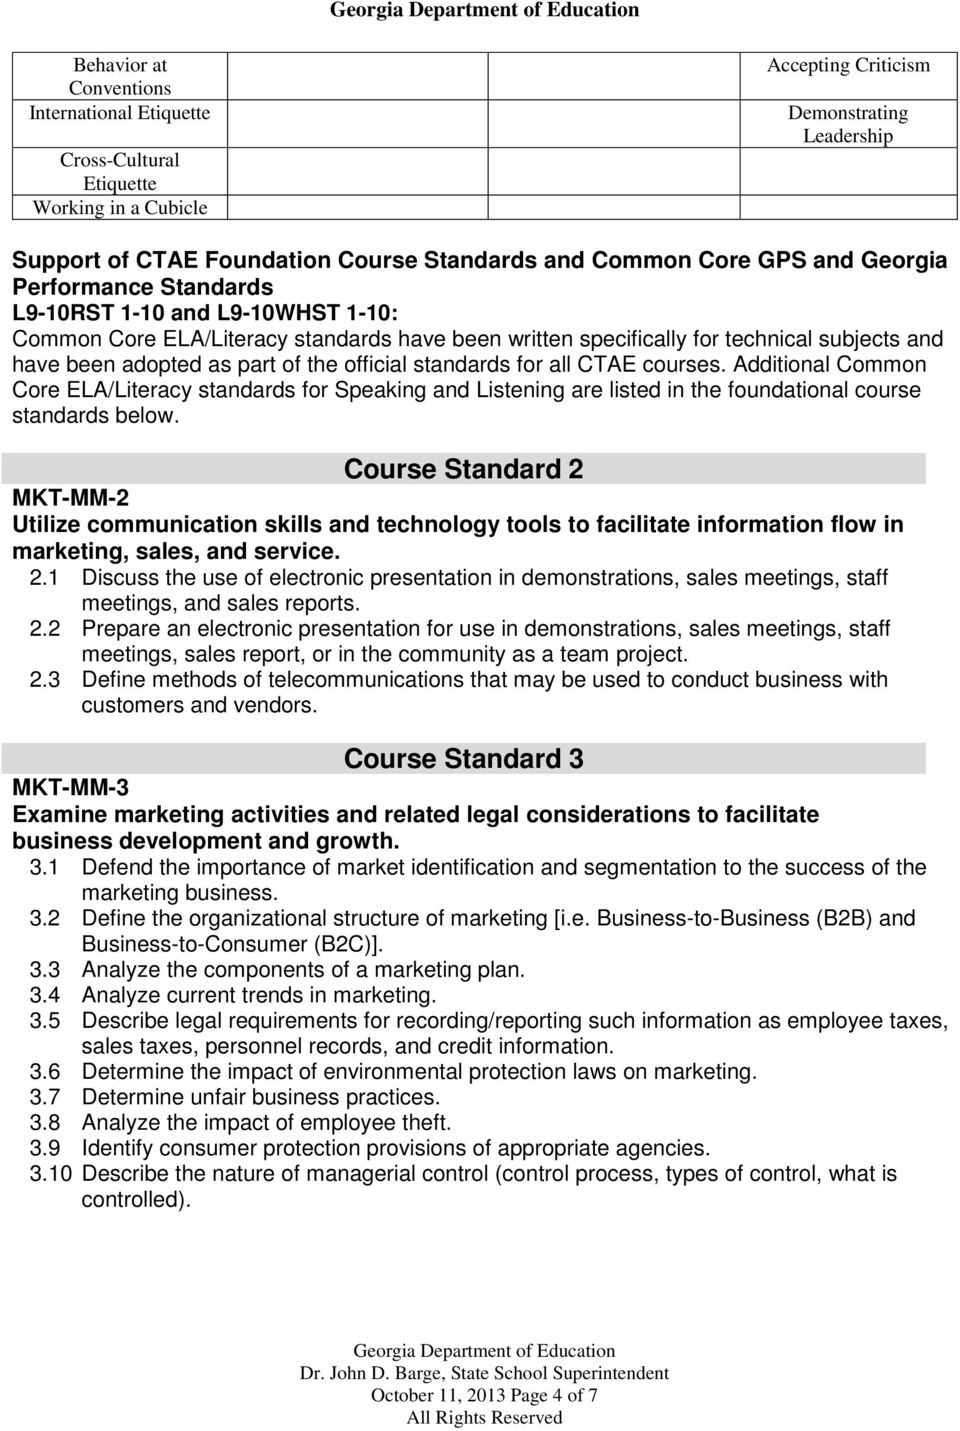 official standards for all CTAE courses. Additional Common Core ELA/Literacy standards for Speaking and Listening are listed in the foundational course standards below.